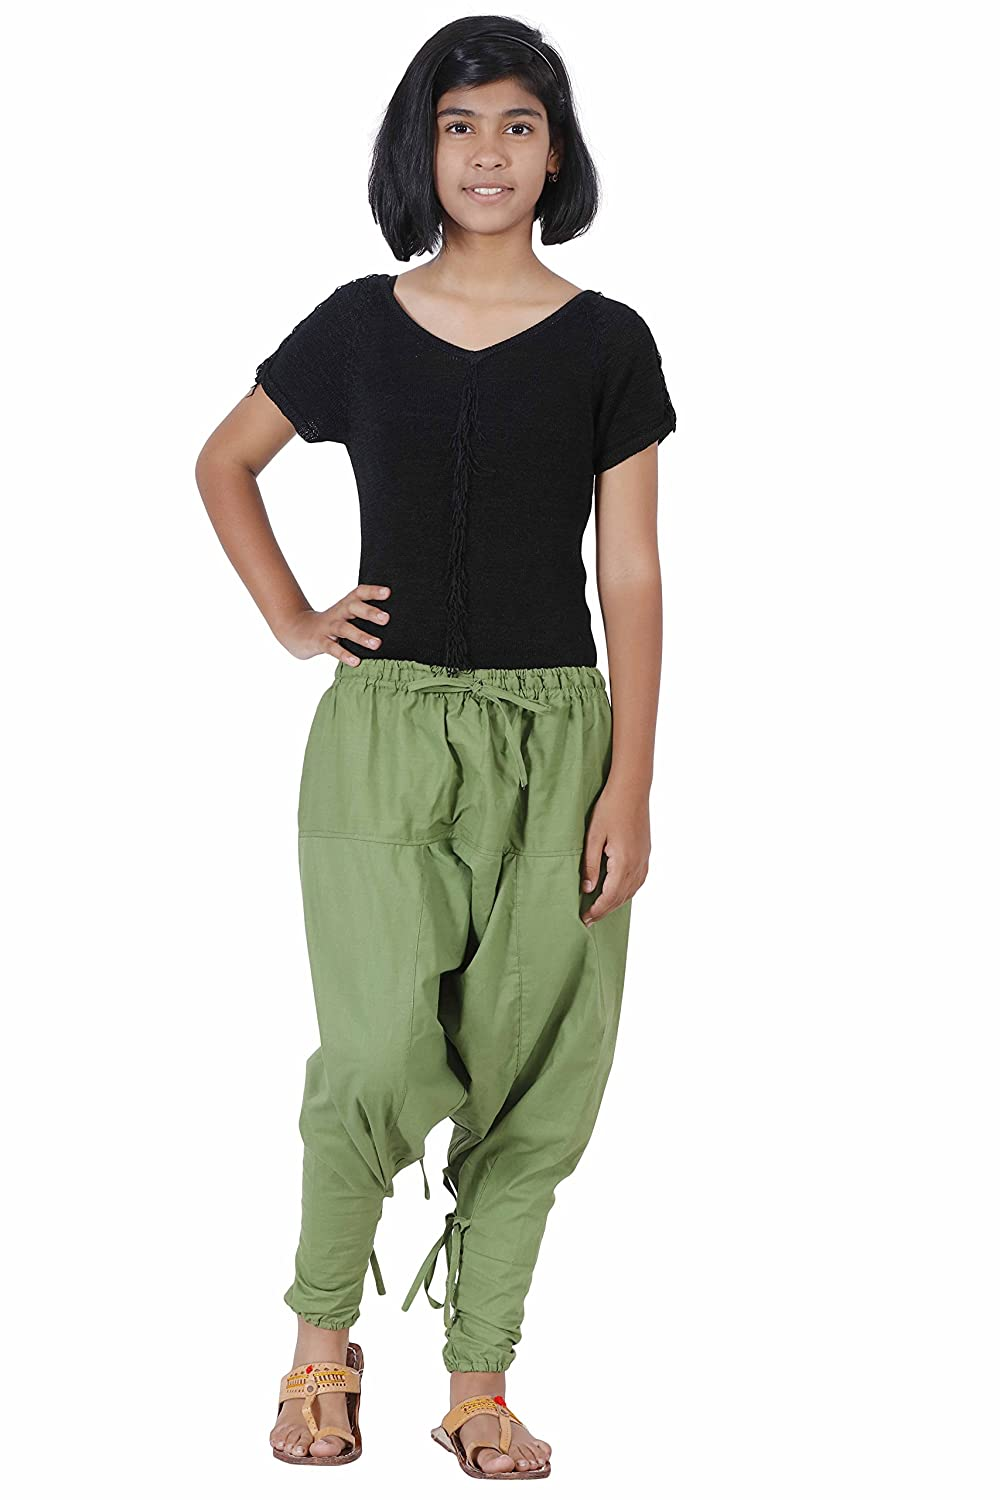 Samurai Style Kids Harem Cotton Hippie Boho Summer Dance Playful Pants